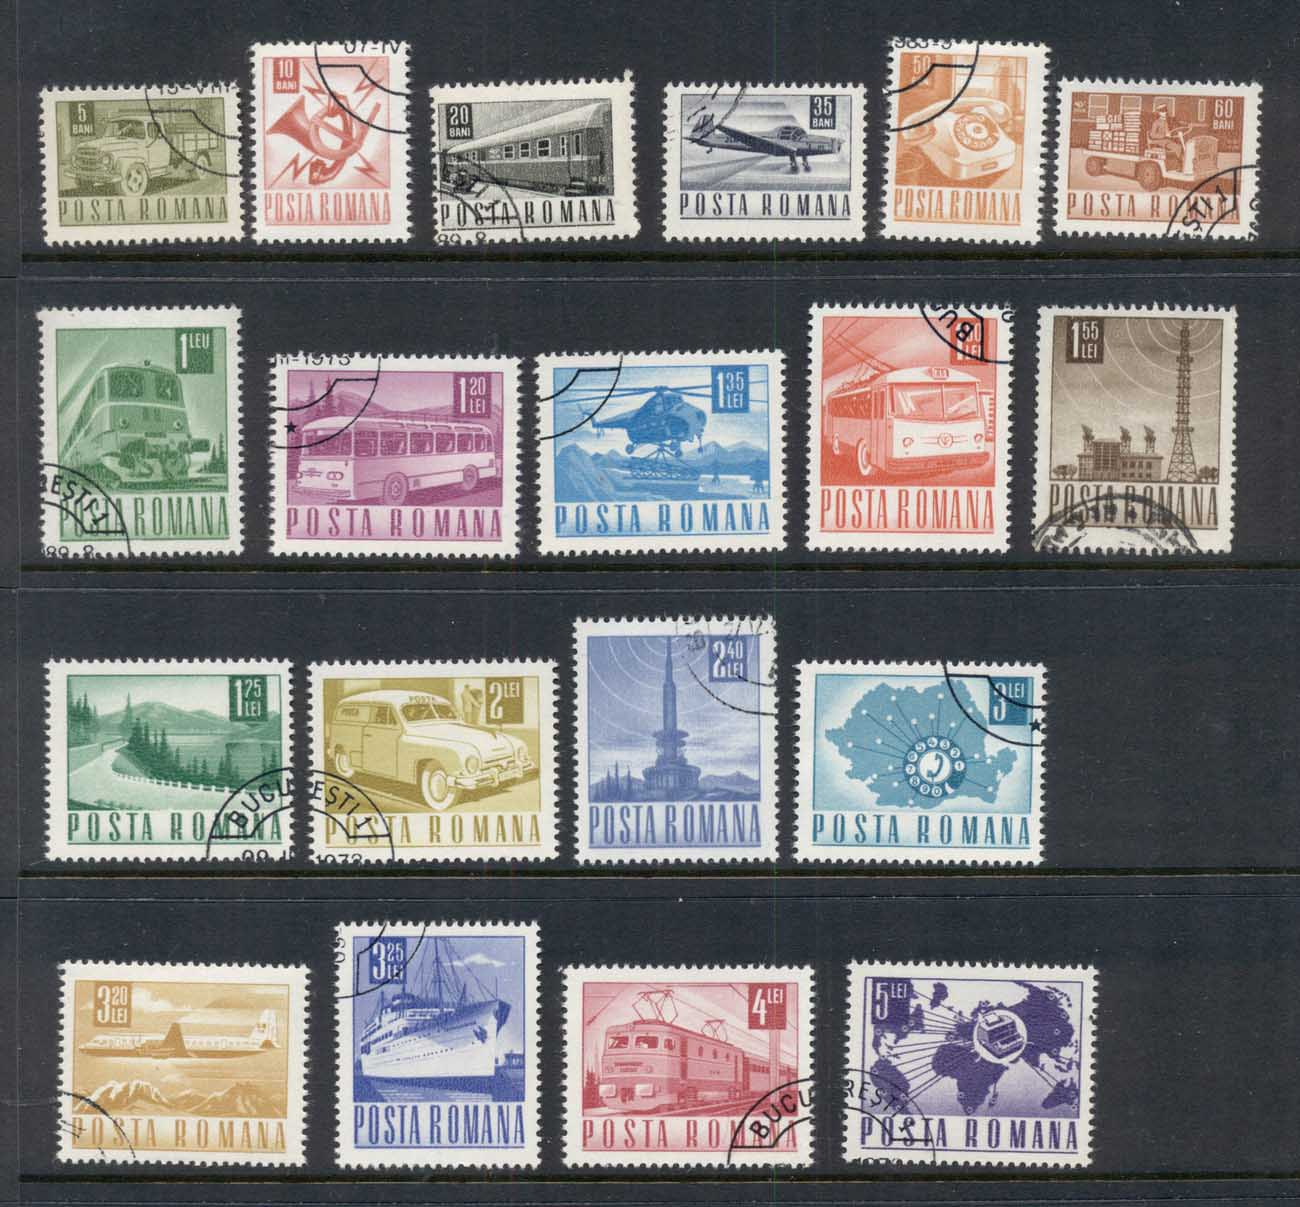 Romania 1967-67 Transport & Communications (19/22, no 40, 55, 60b, 1.6l) CTO